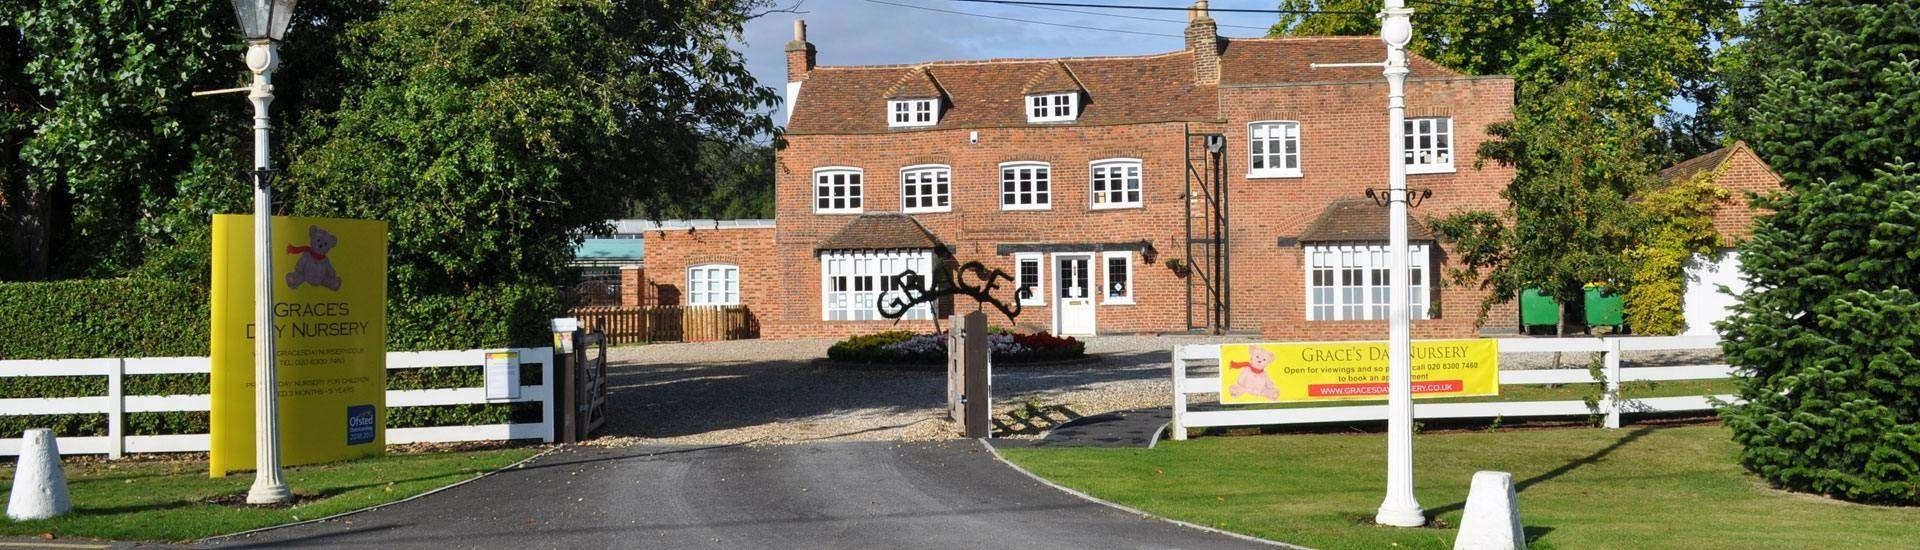 Ruxley Manor | Concessions | Sidcup within Coach House Restaurant Ruxley Manor Garden Centre